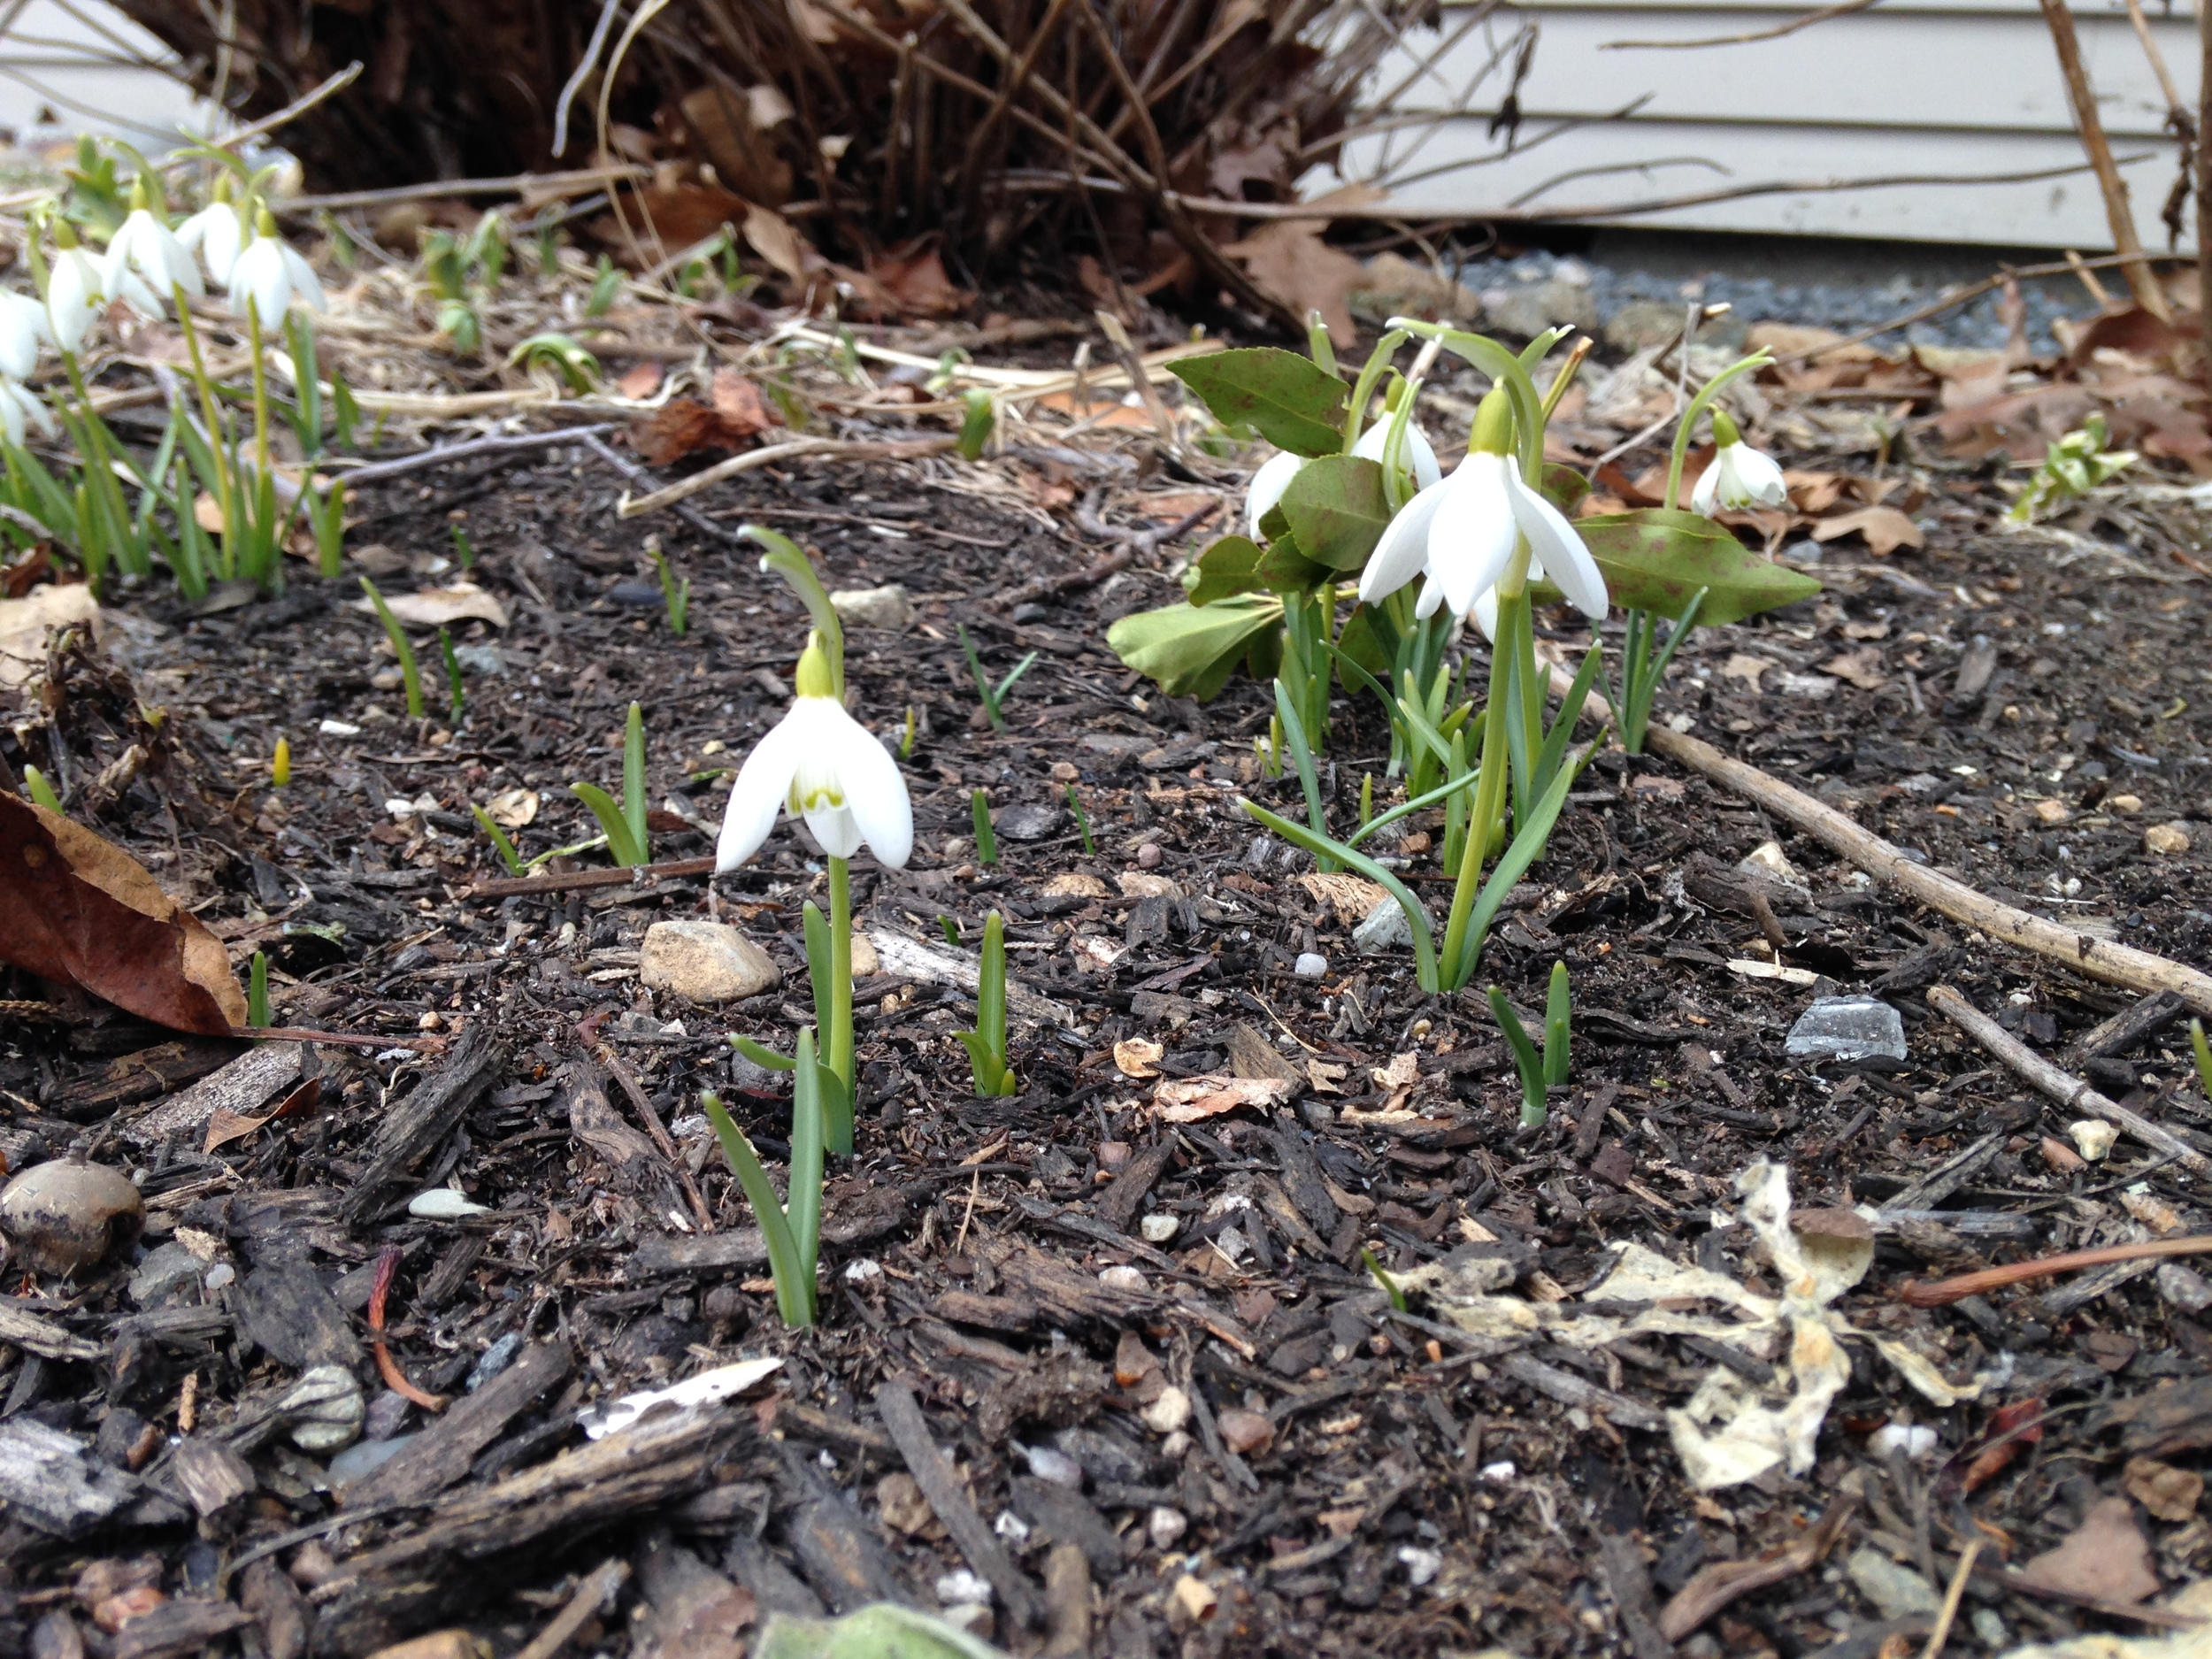 Snowdrops out at last. Earlier this season there was 6 feet of snow covering this particular garden bed.